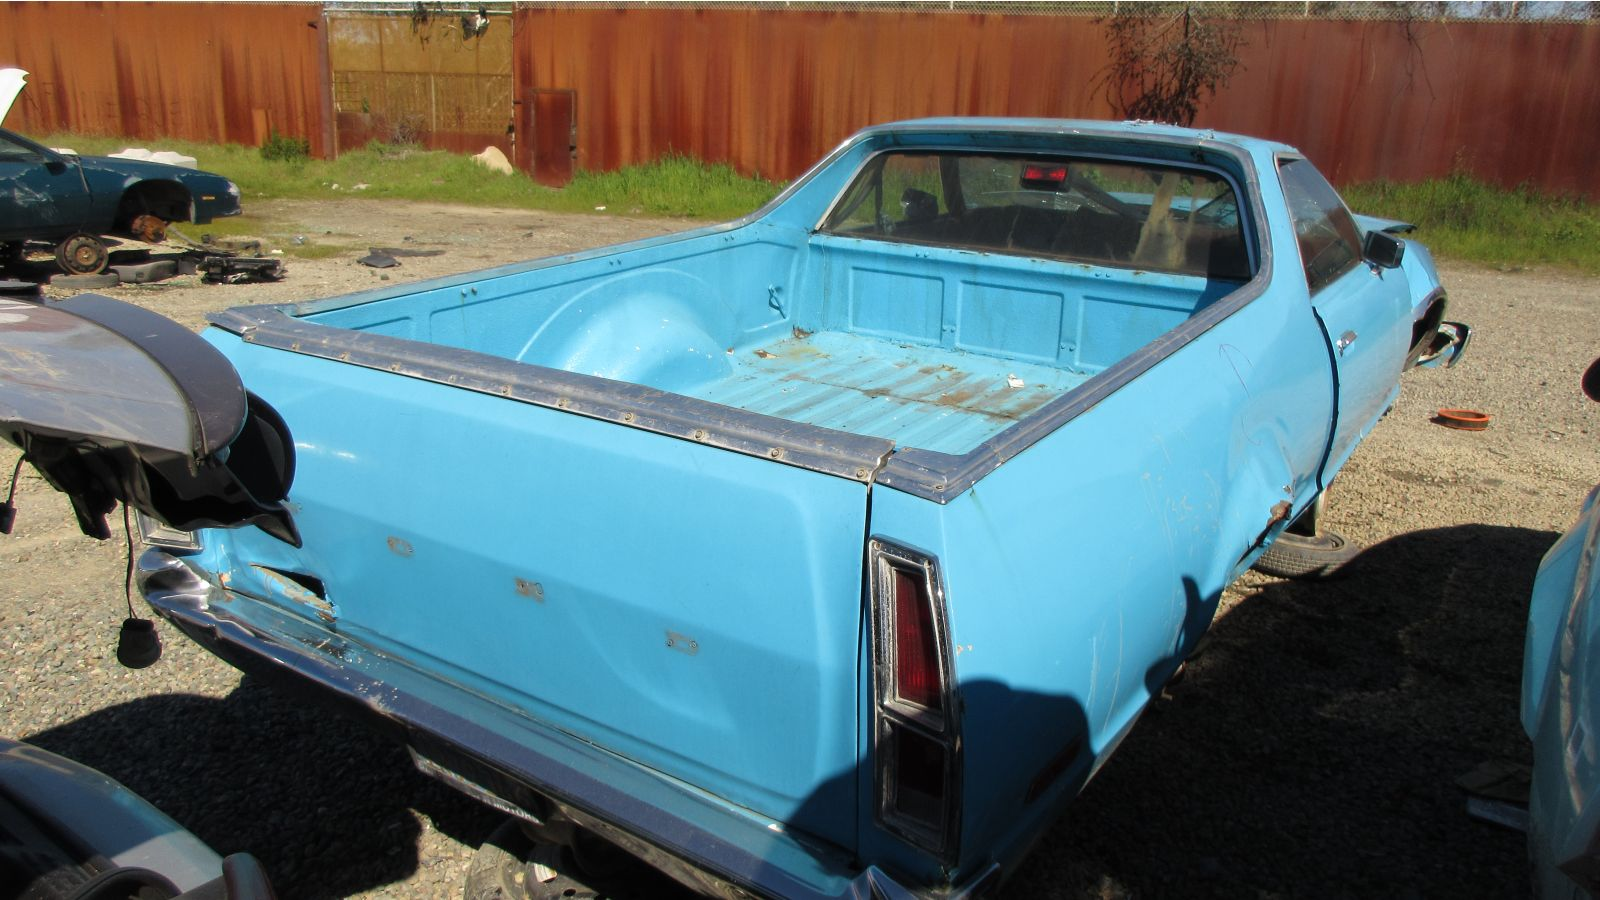 hight resolution of with a curb weight just a hair under two tons the 1979 ranchero was on the sluggish side and fuel economy was ill suited for geopolitical events of the